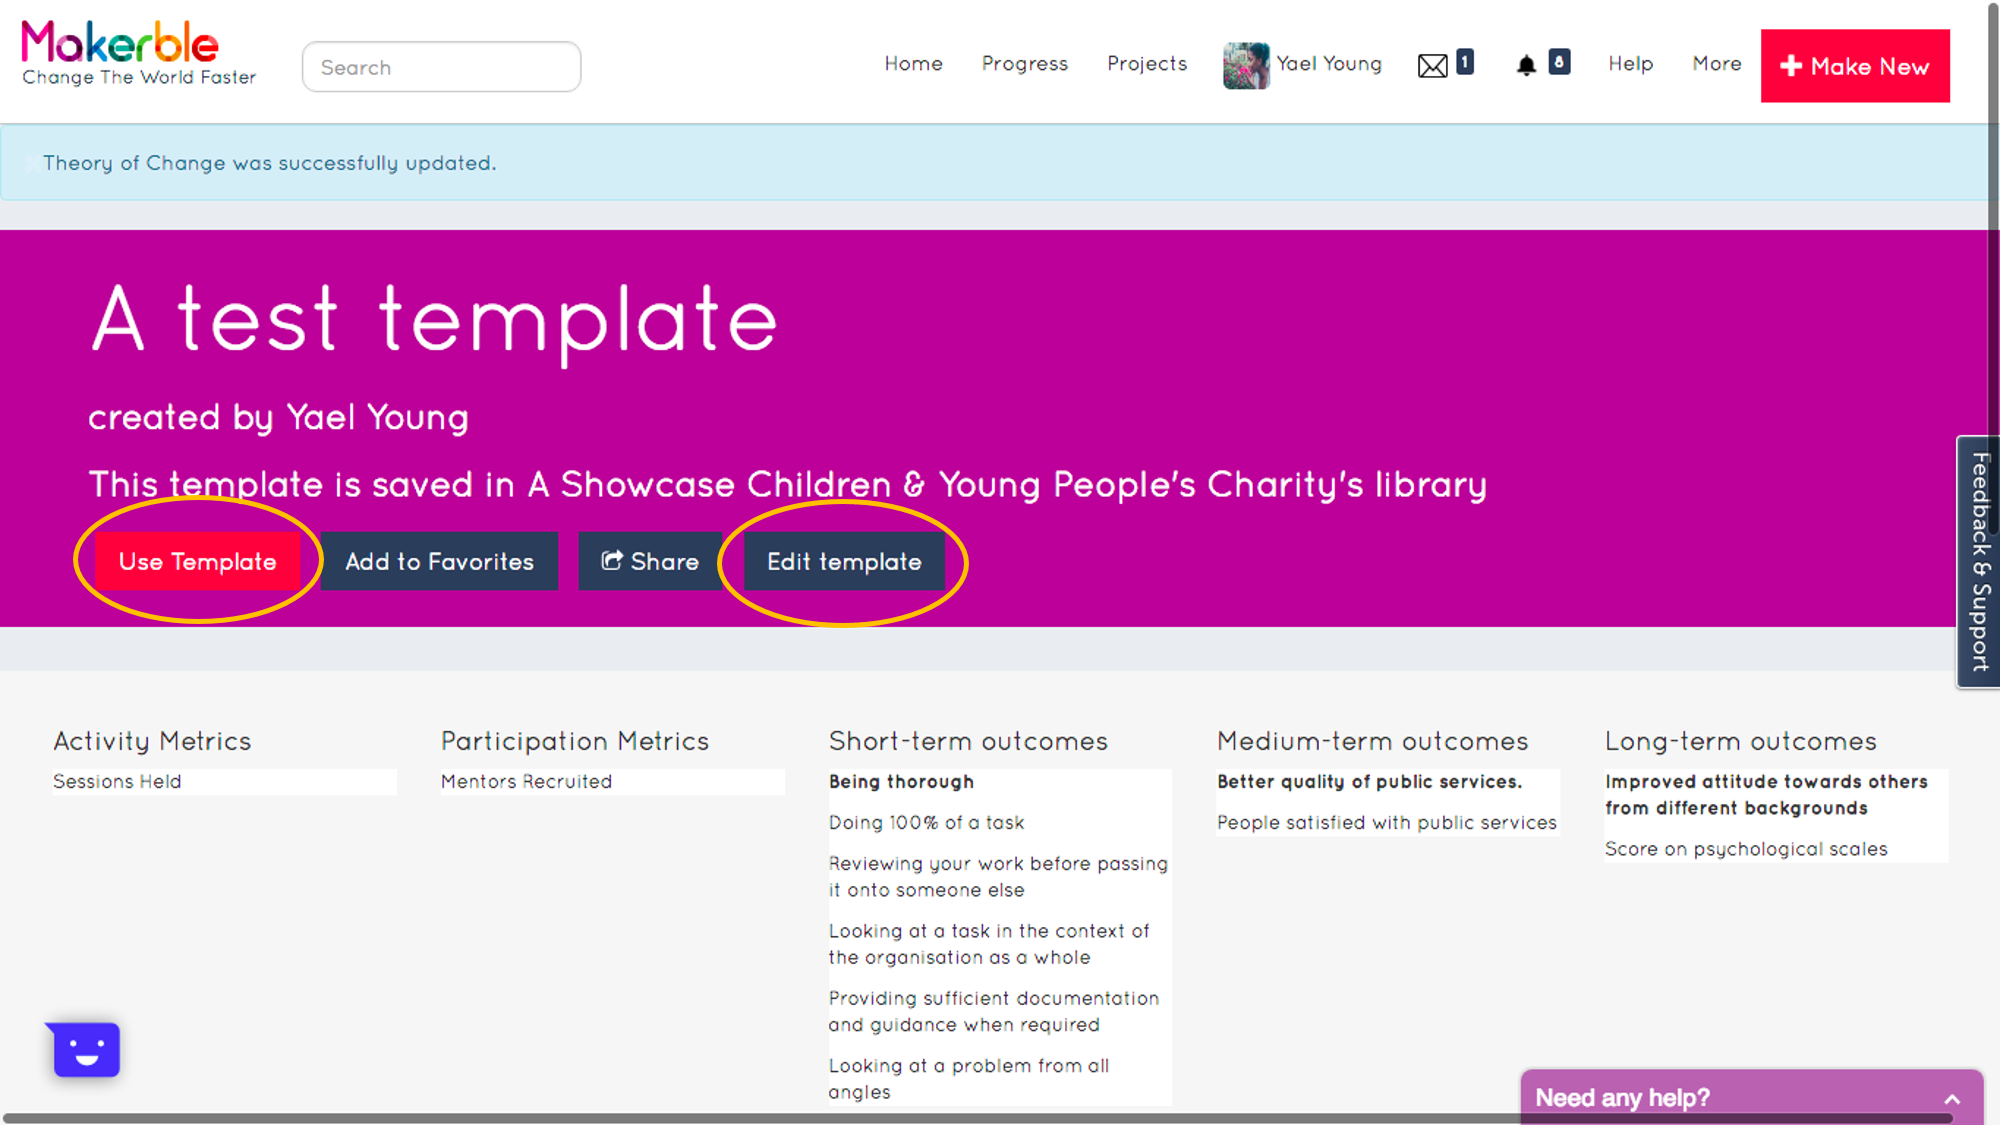 - You will arrive on your Template's page.From here, by pressing the respective buttons highlighted, you can edit the Template (i.e. adjust the metrics) or use the Template